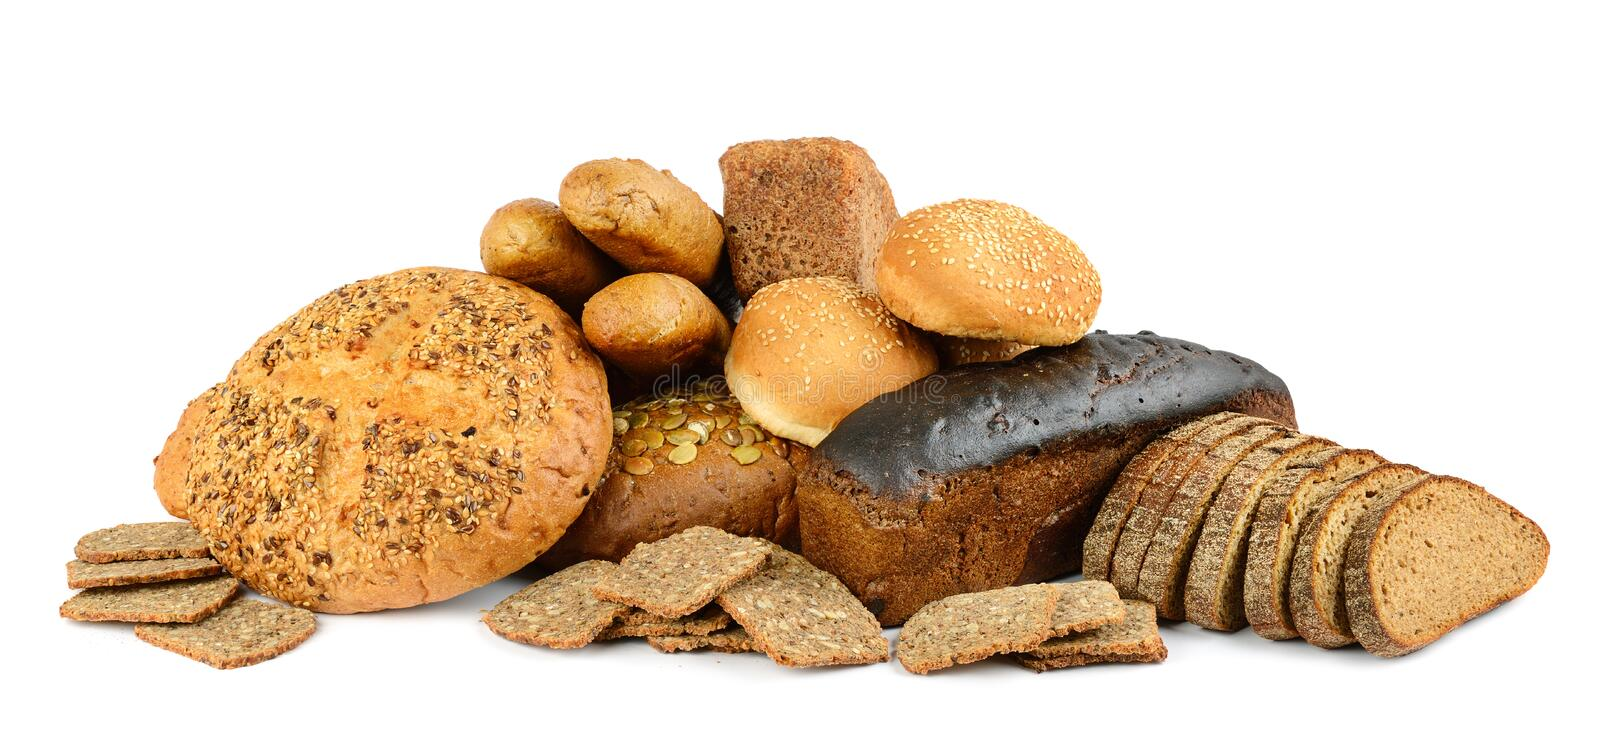 Bread and baked goods isolated on white background. Side view royalty free stock photo